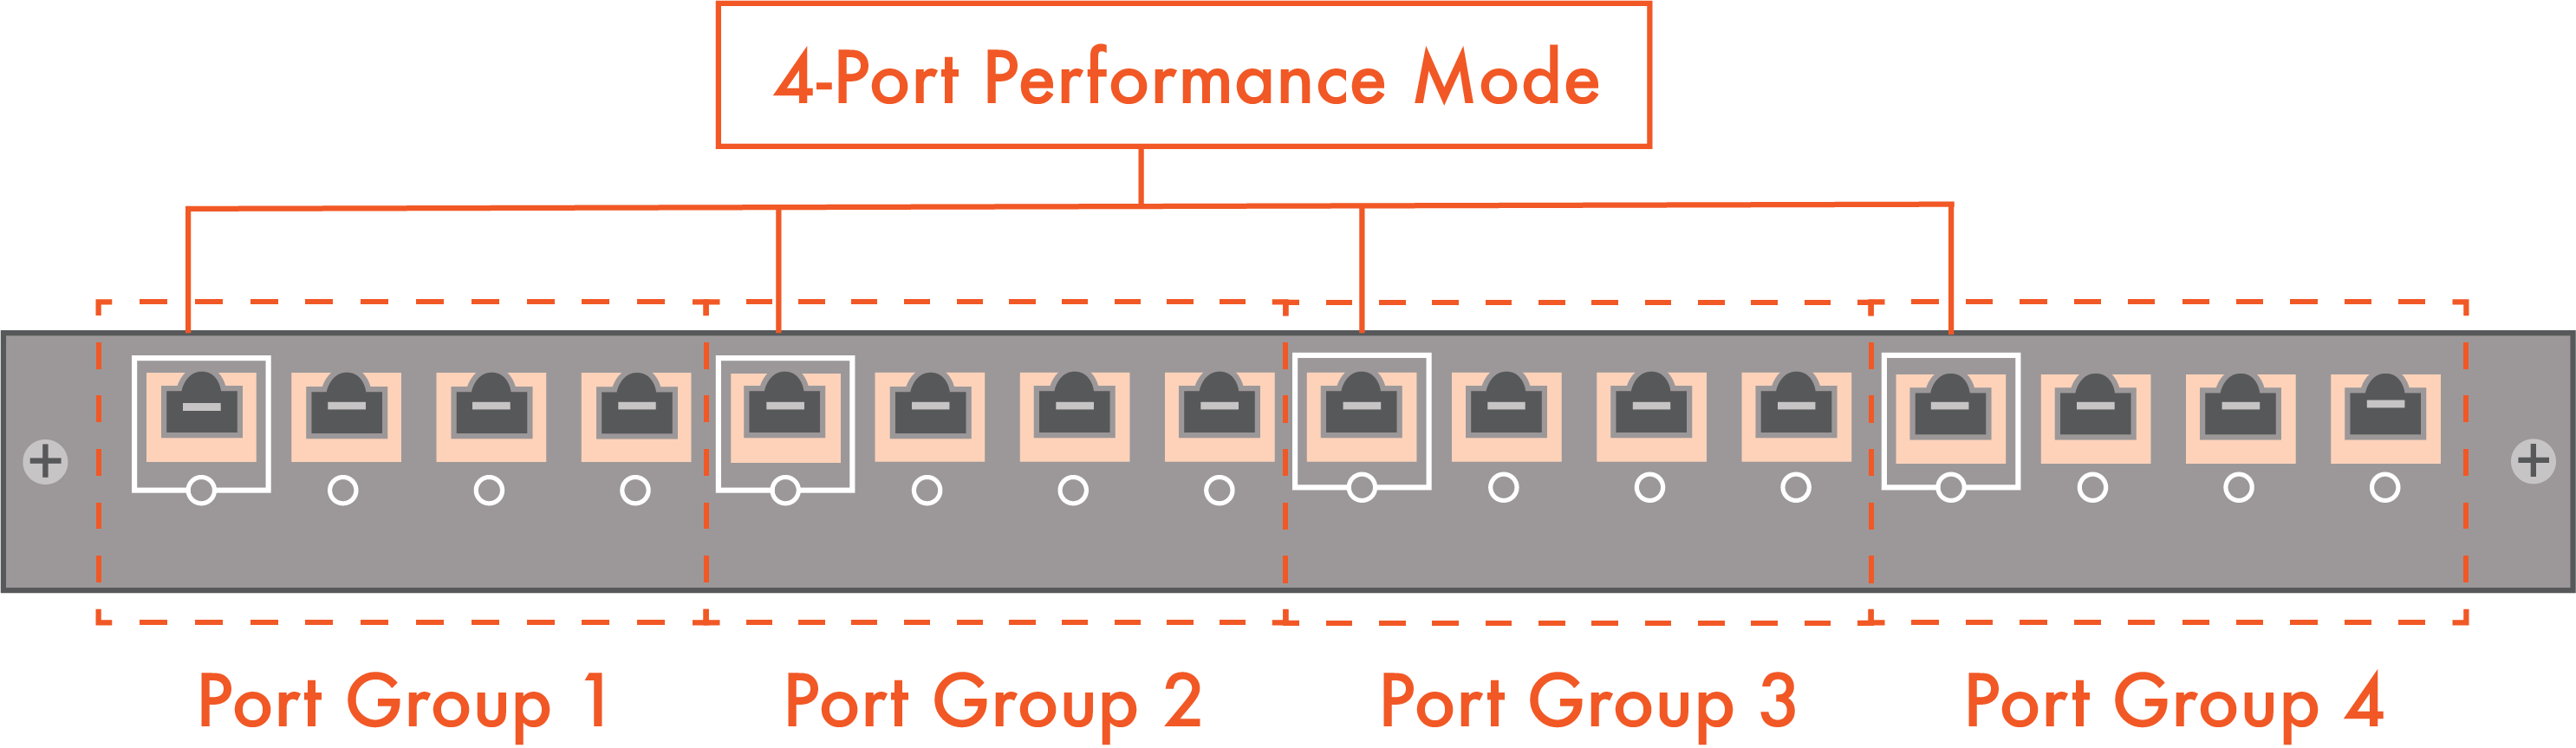 4-Ports-In-Performance-Mode-Copper-- pivit - global - blog